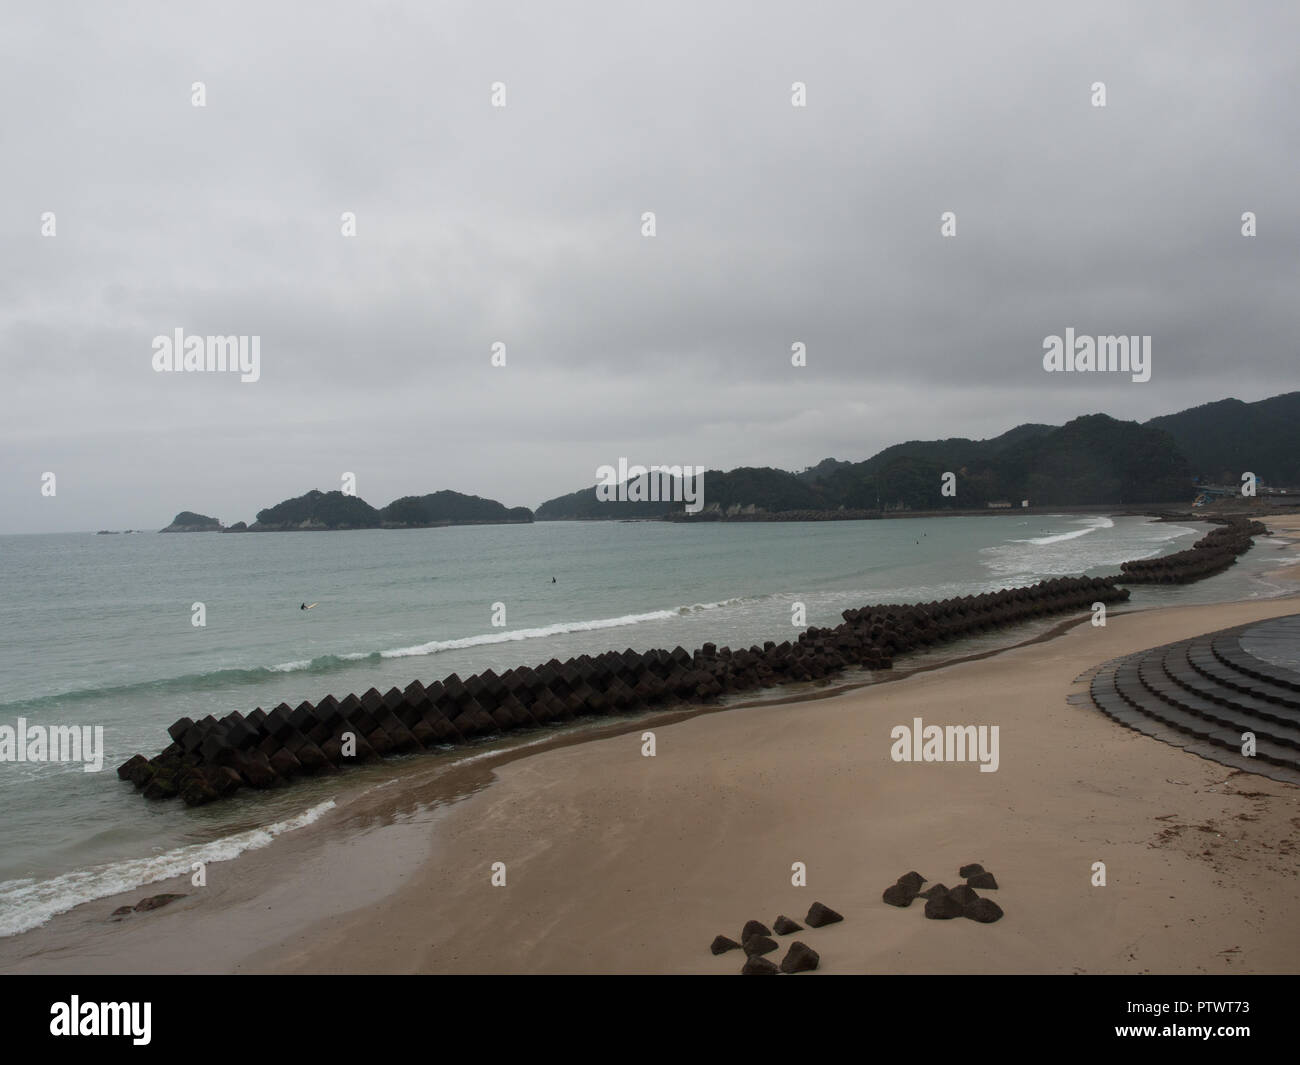 Tetrapod reefs on sandy beach with surfers and circe stairs, Shishikui,  Tokushima,  Shikoku, Japan - Stock Image